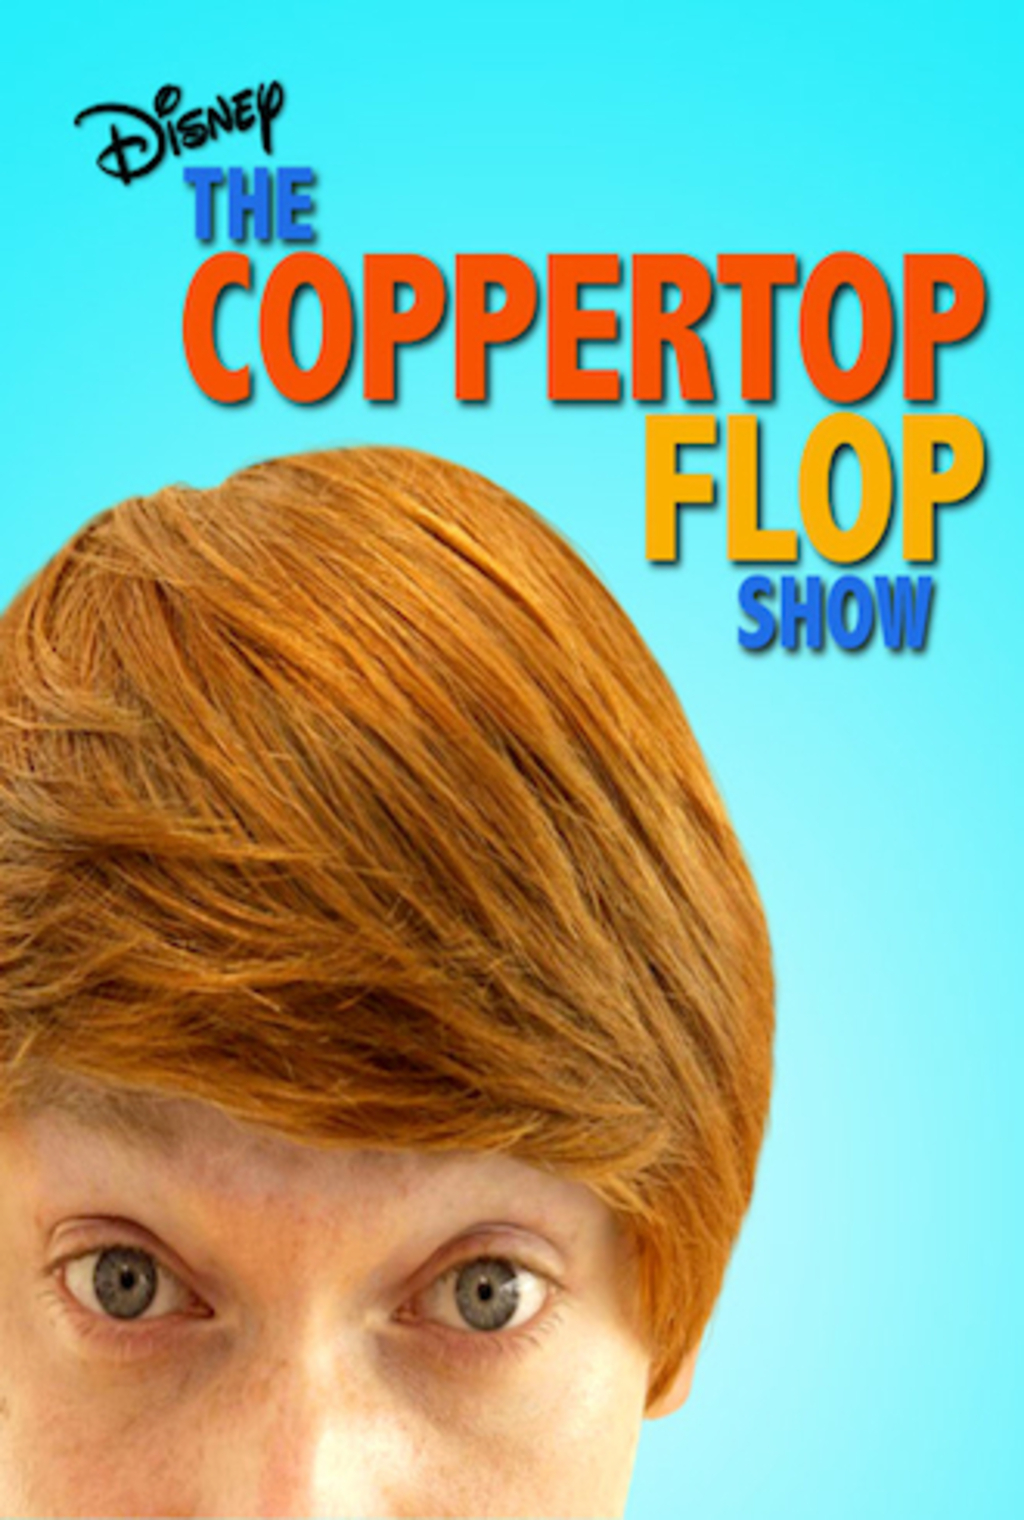 The Coppertop Flop Show - Cover Art